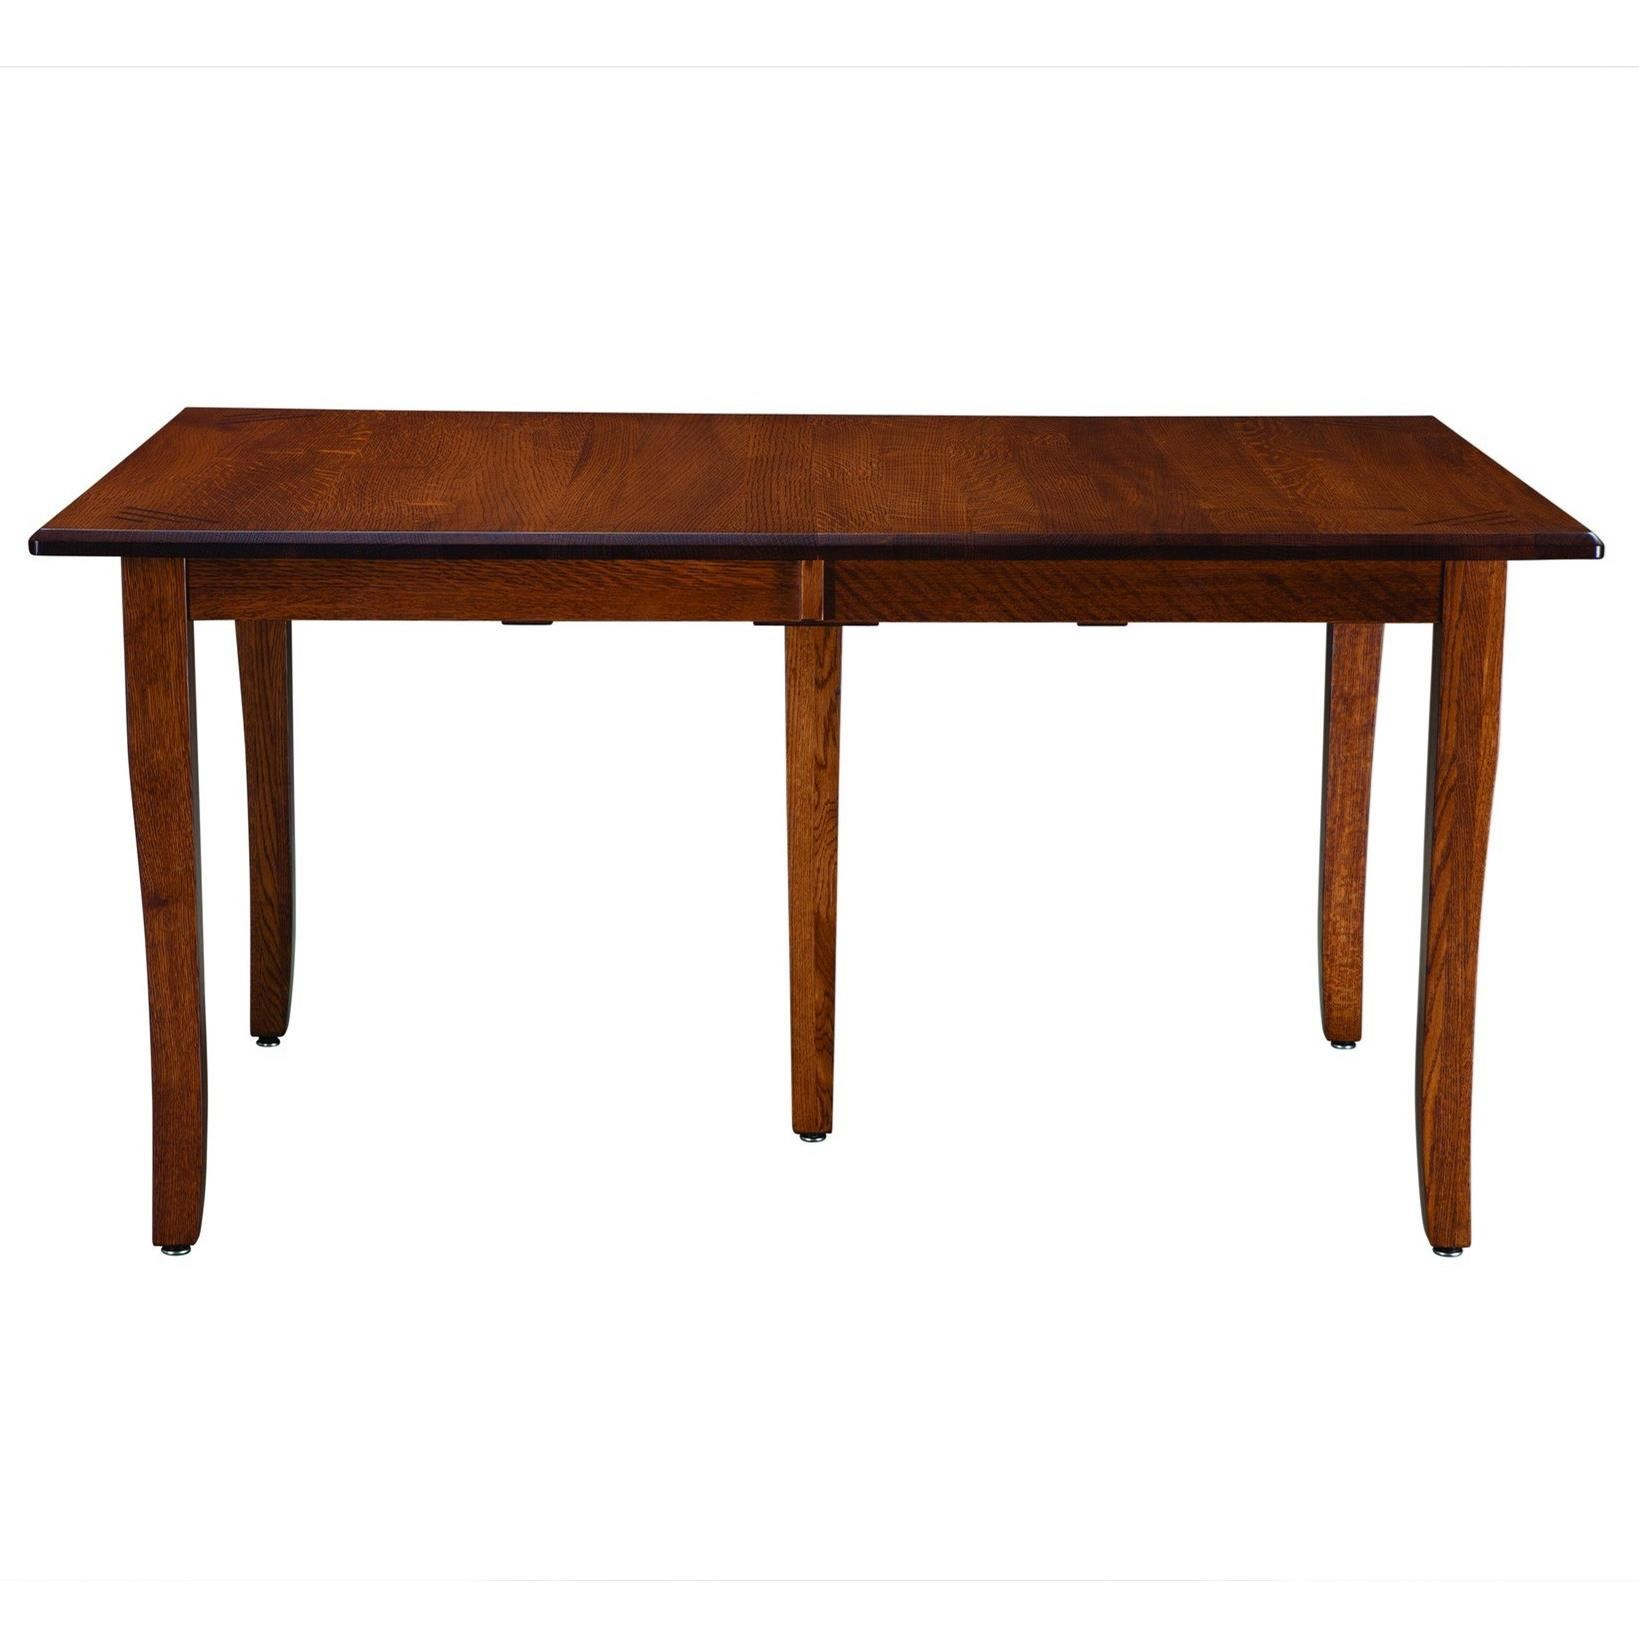 Classic Shaker Customizable Table by Palettes by Winesburg at Dinette Depot